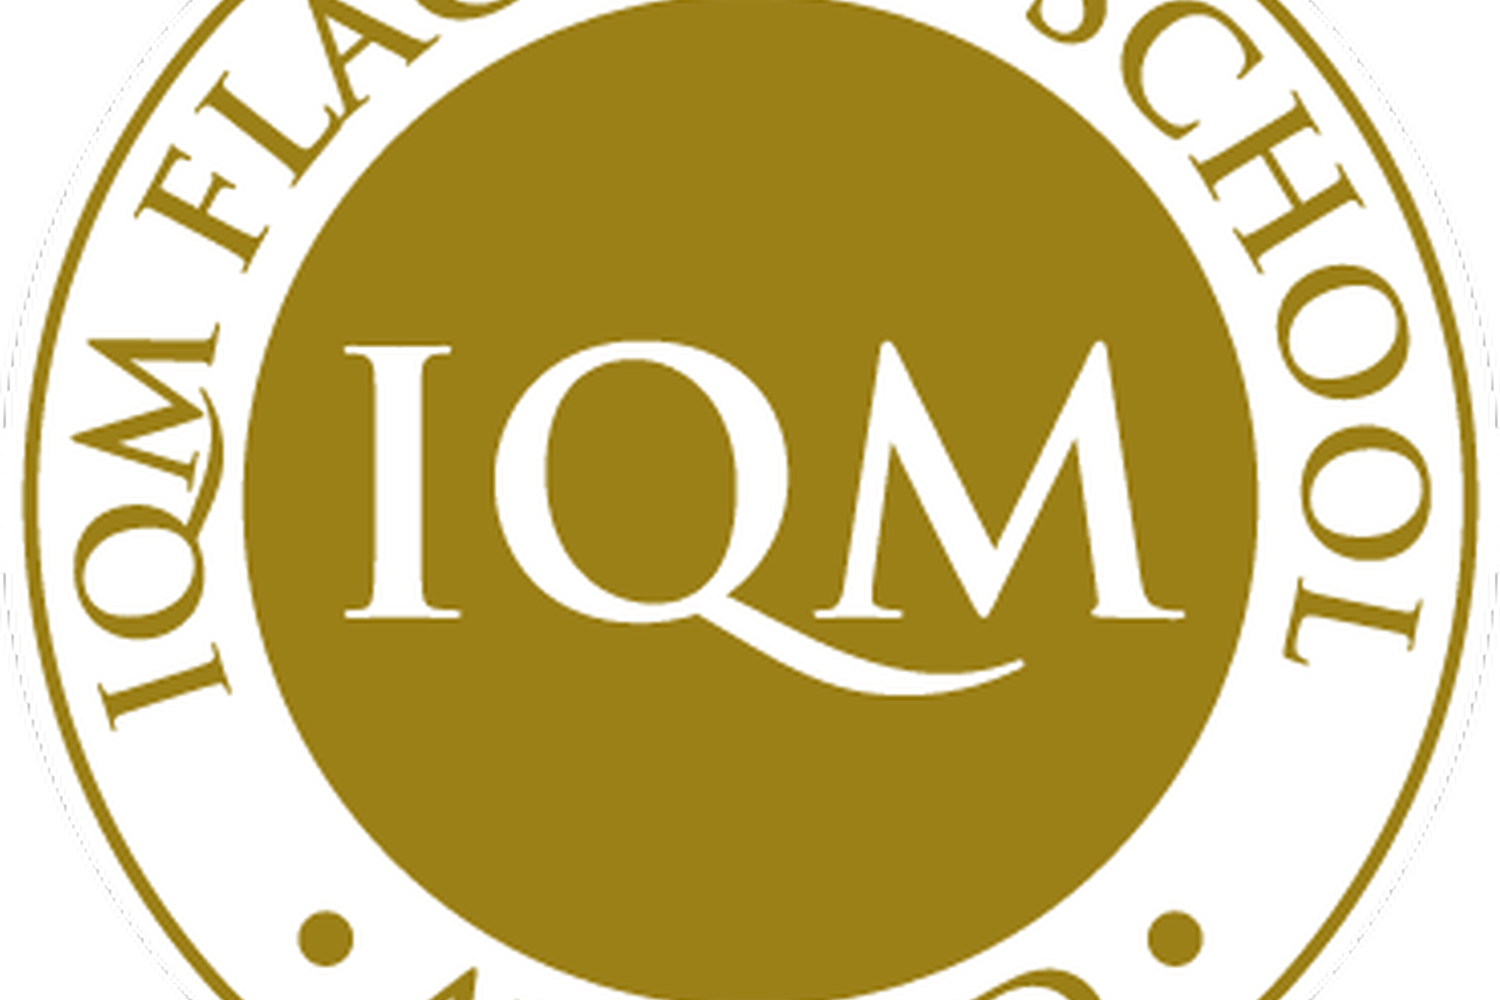 New College Leicester receives the IQM flagship status for the second year running